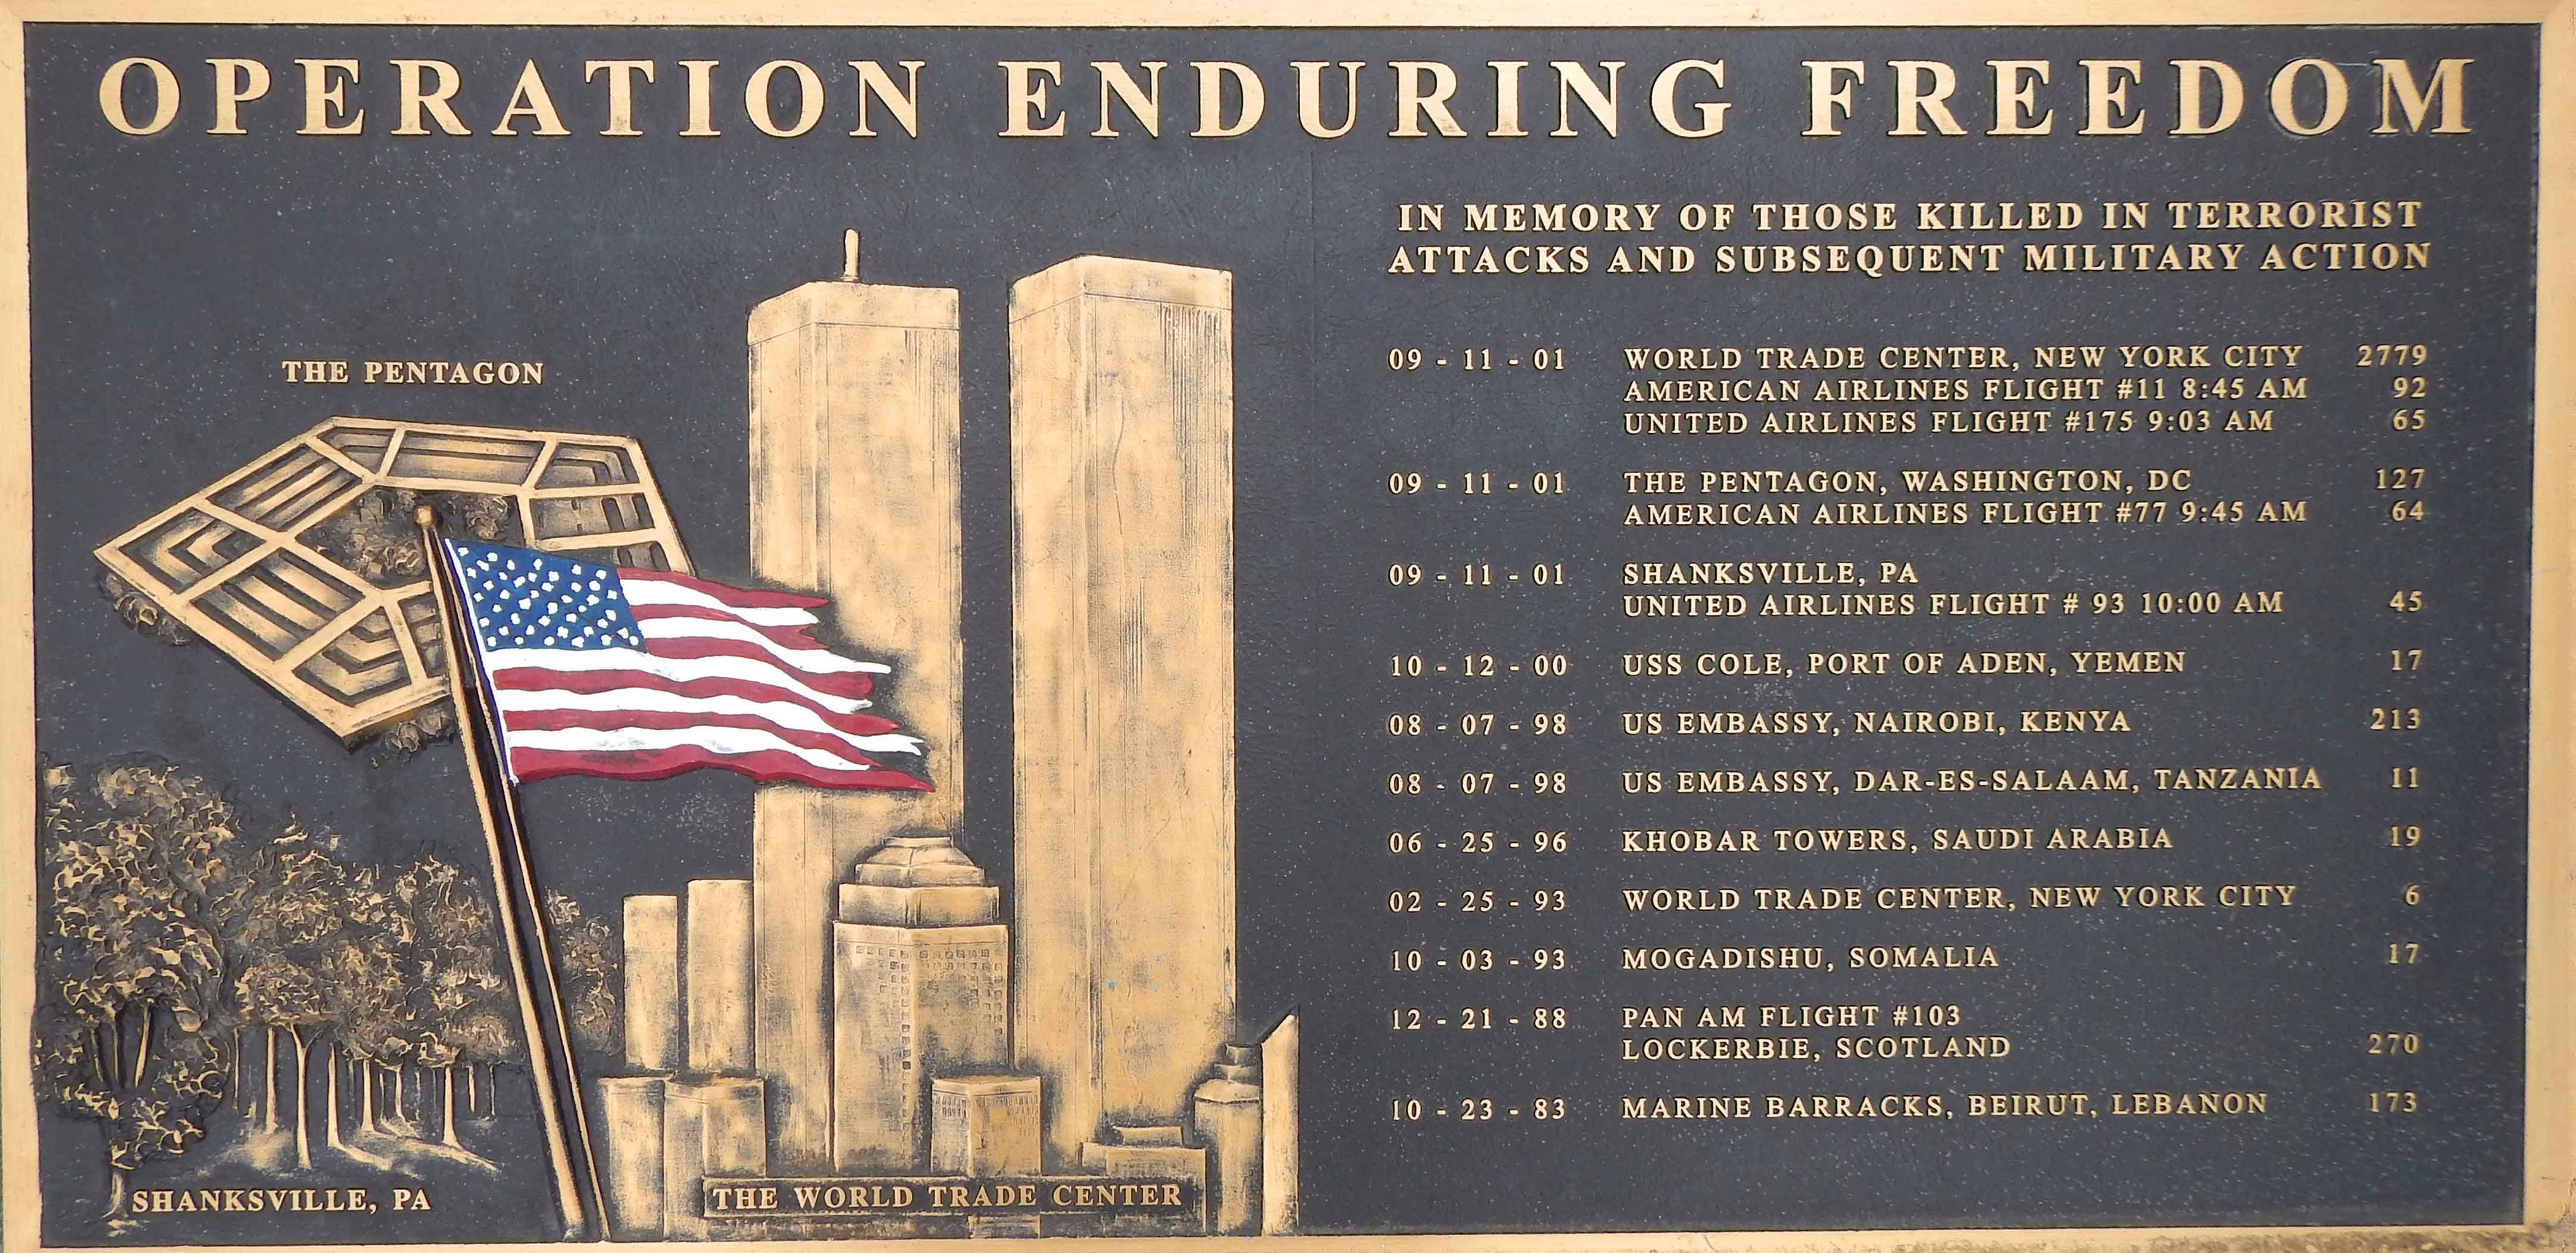 Enduring Freedom Monument (jpg)